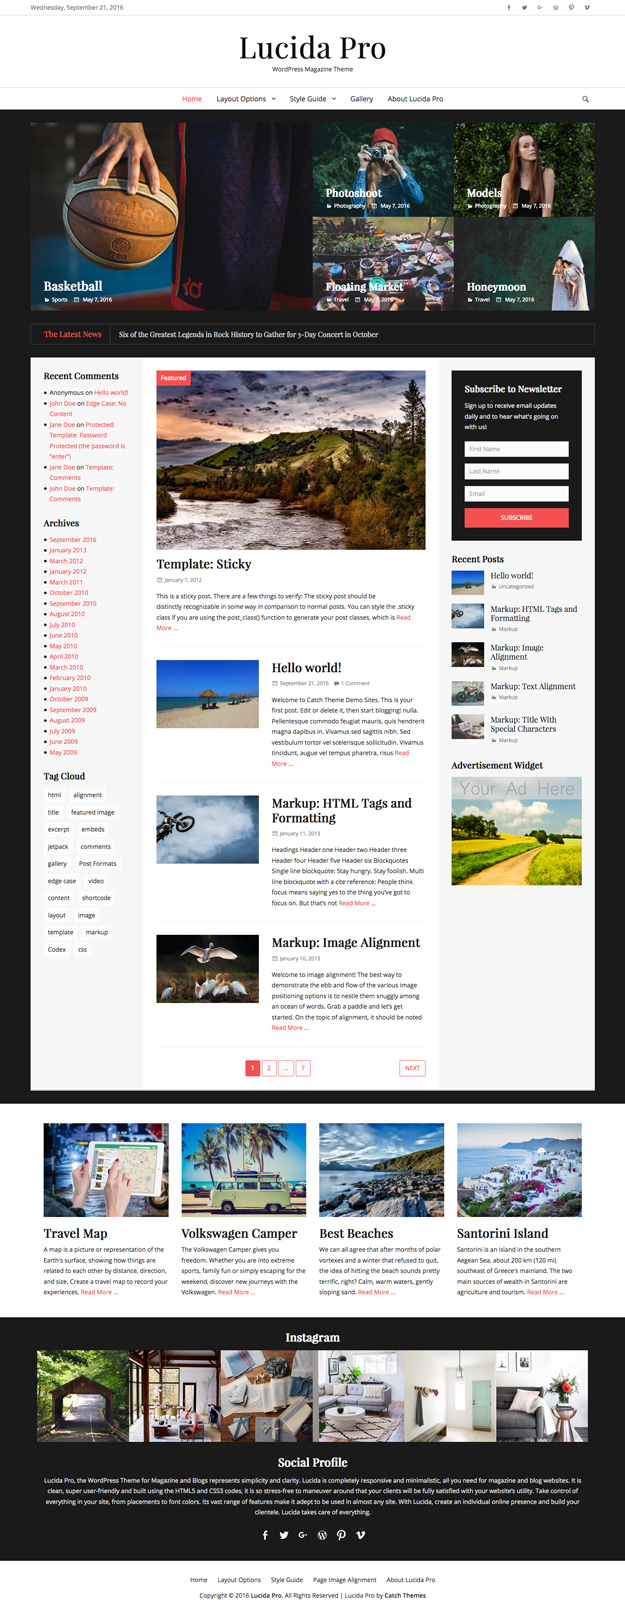 Lucida Pro, the WordPress Theme for Magazine and Blogs represents simplicity and clarity